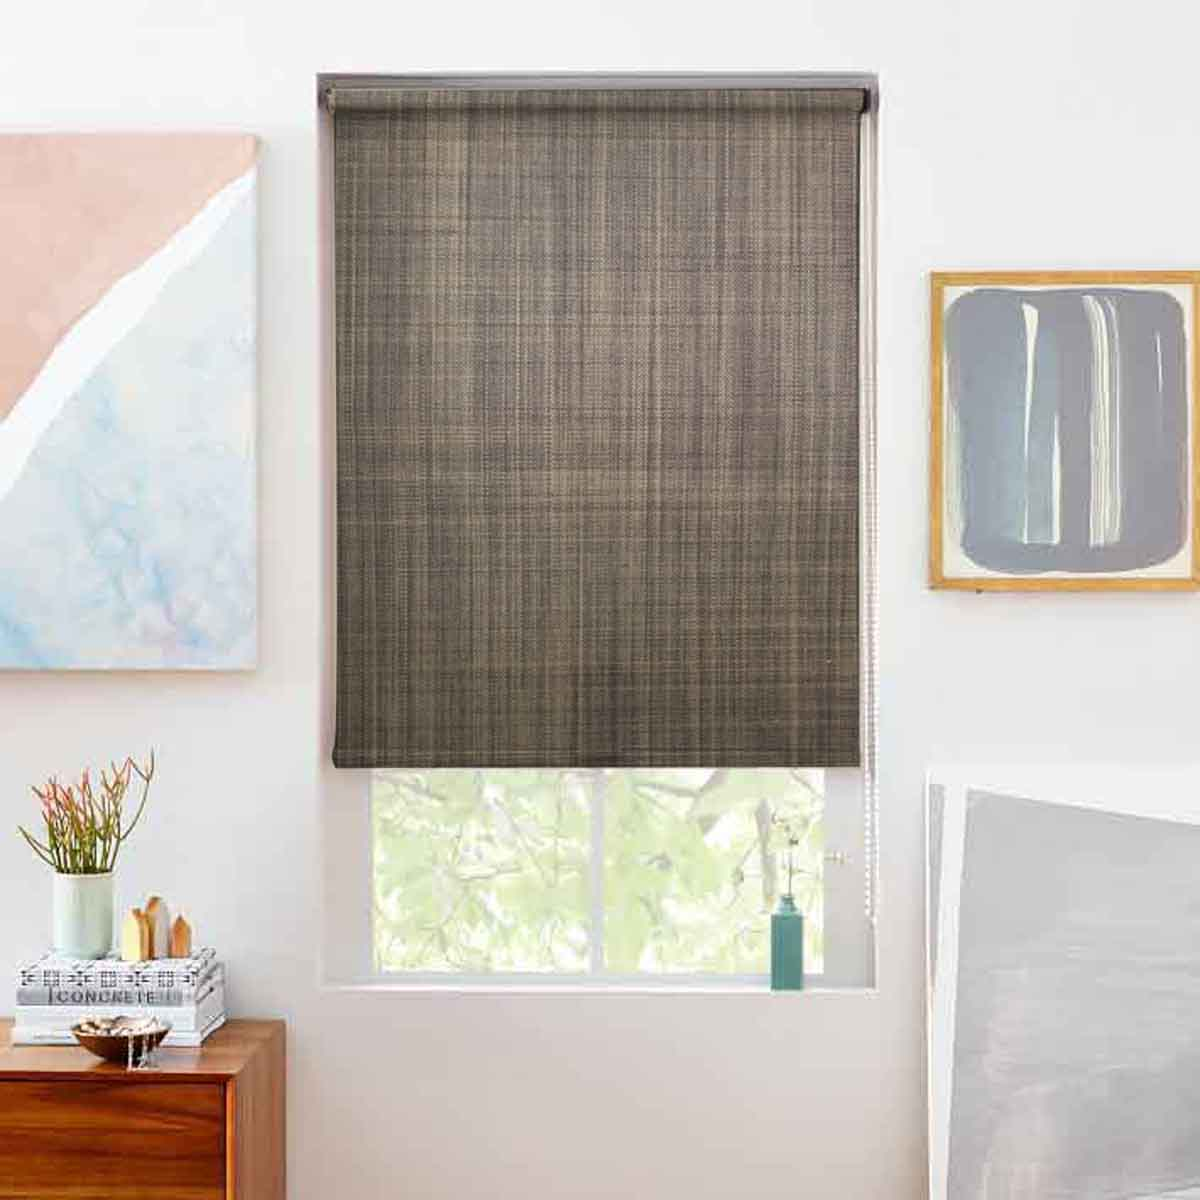 High Quality Linen Fabric Roller Blinds And Shades For Home Office Buy Linen Fabric Roller Blinds Fabric Shades Roller Shades For Office Product On Alibaba Com